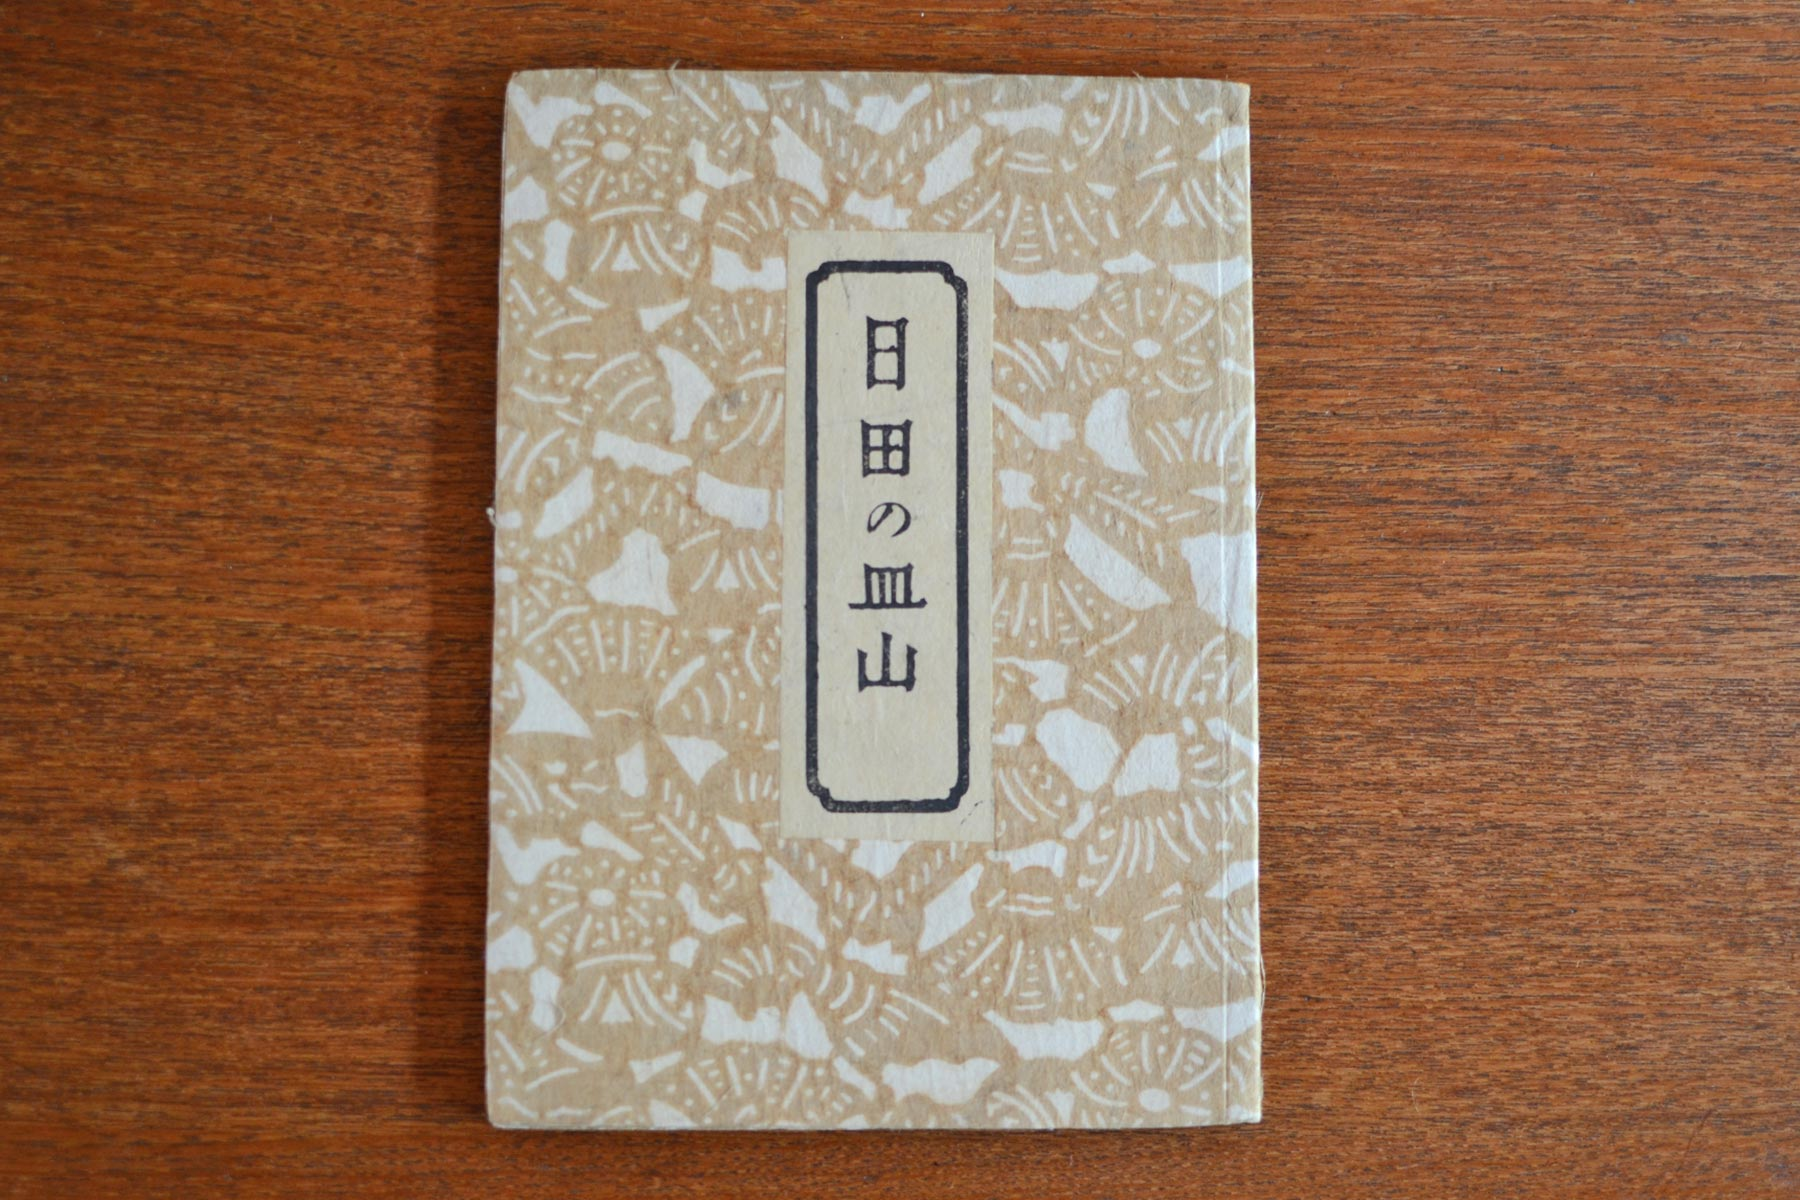 The original Hita no Sarayama by Yanagi Muneyoshi with a stencil dyed cover. Onta was made famous by this small book published in 1942 and was designated as intangible cultural property by the Japanese government in 1995.